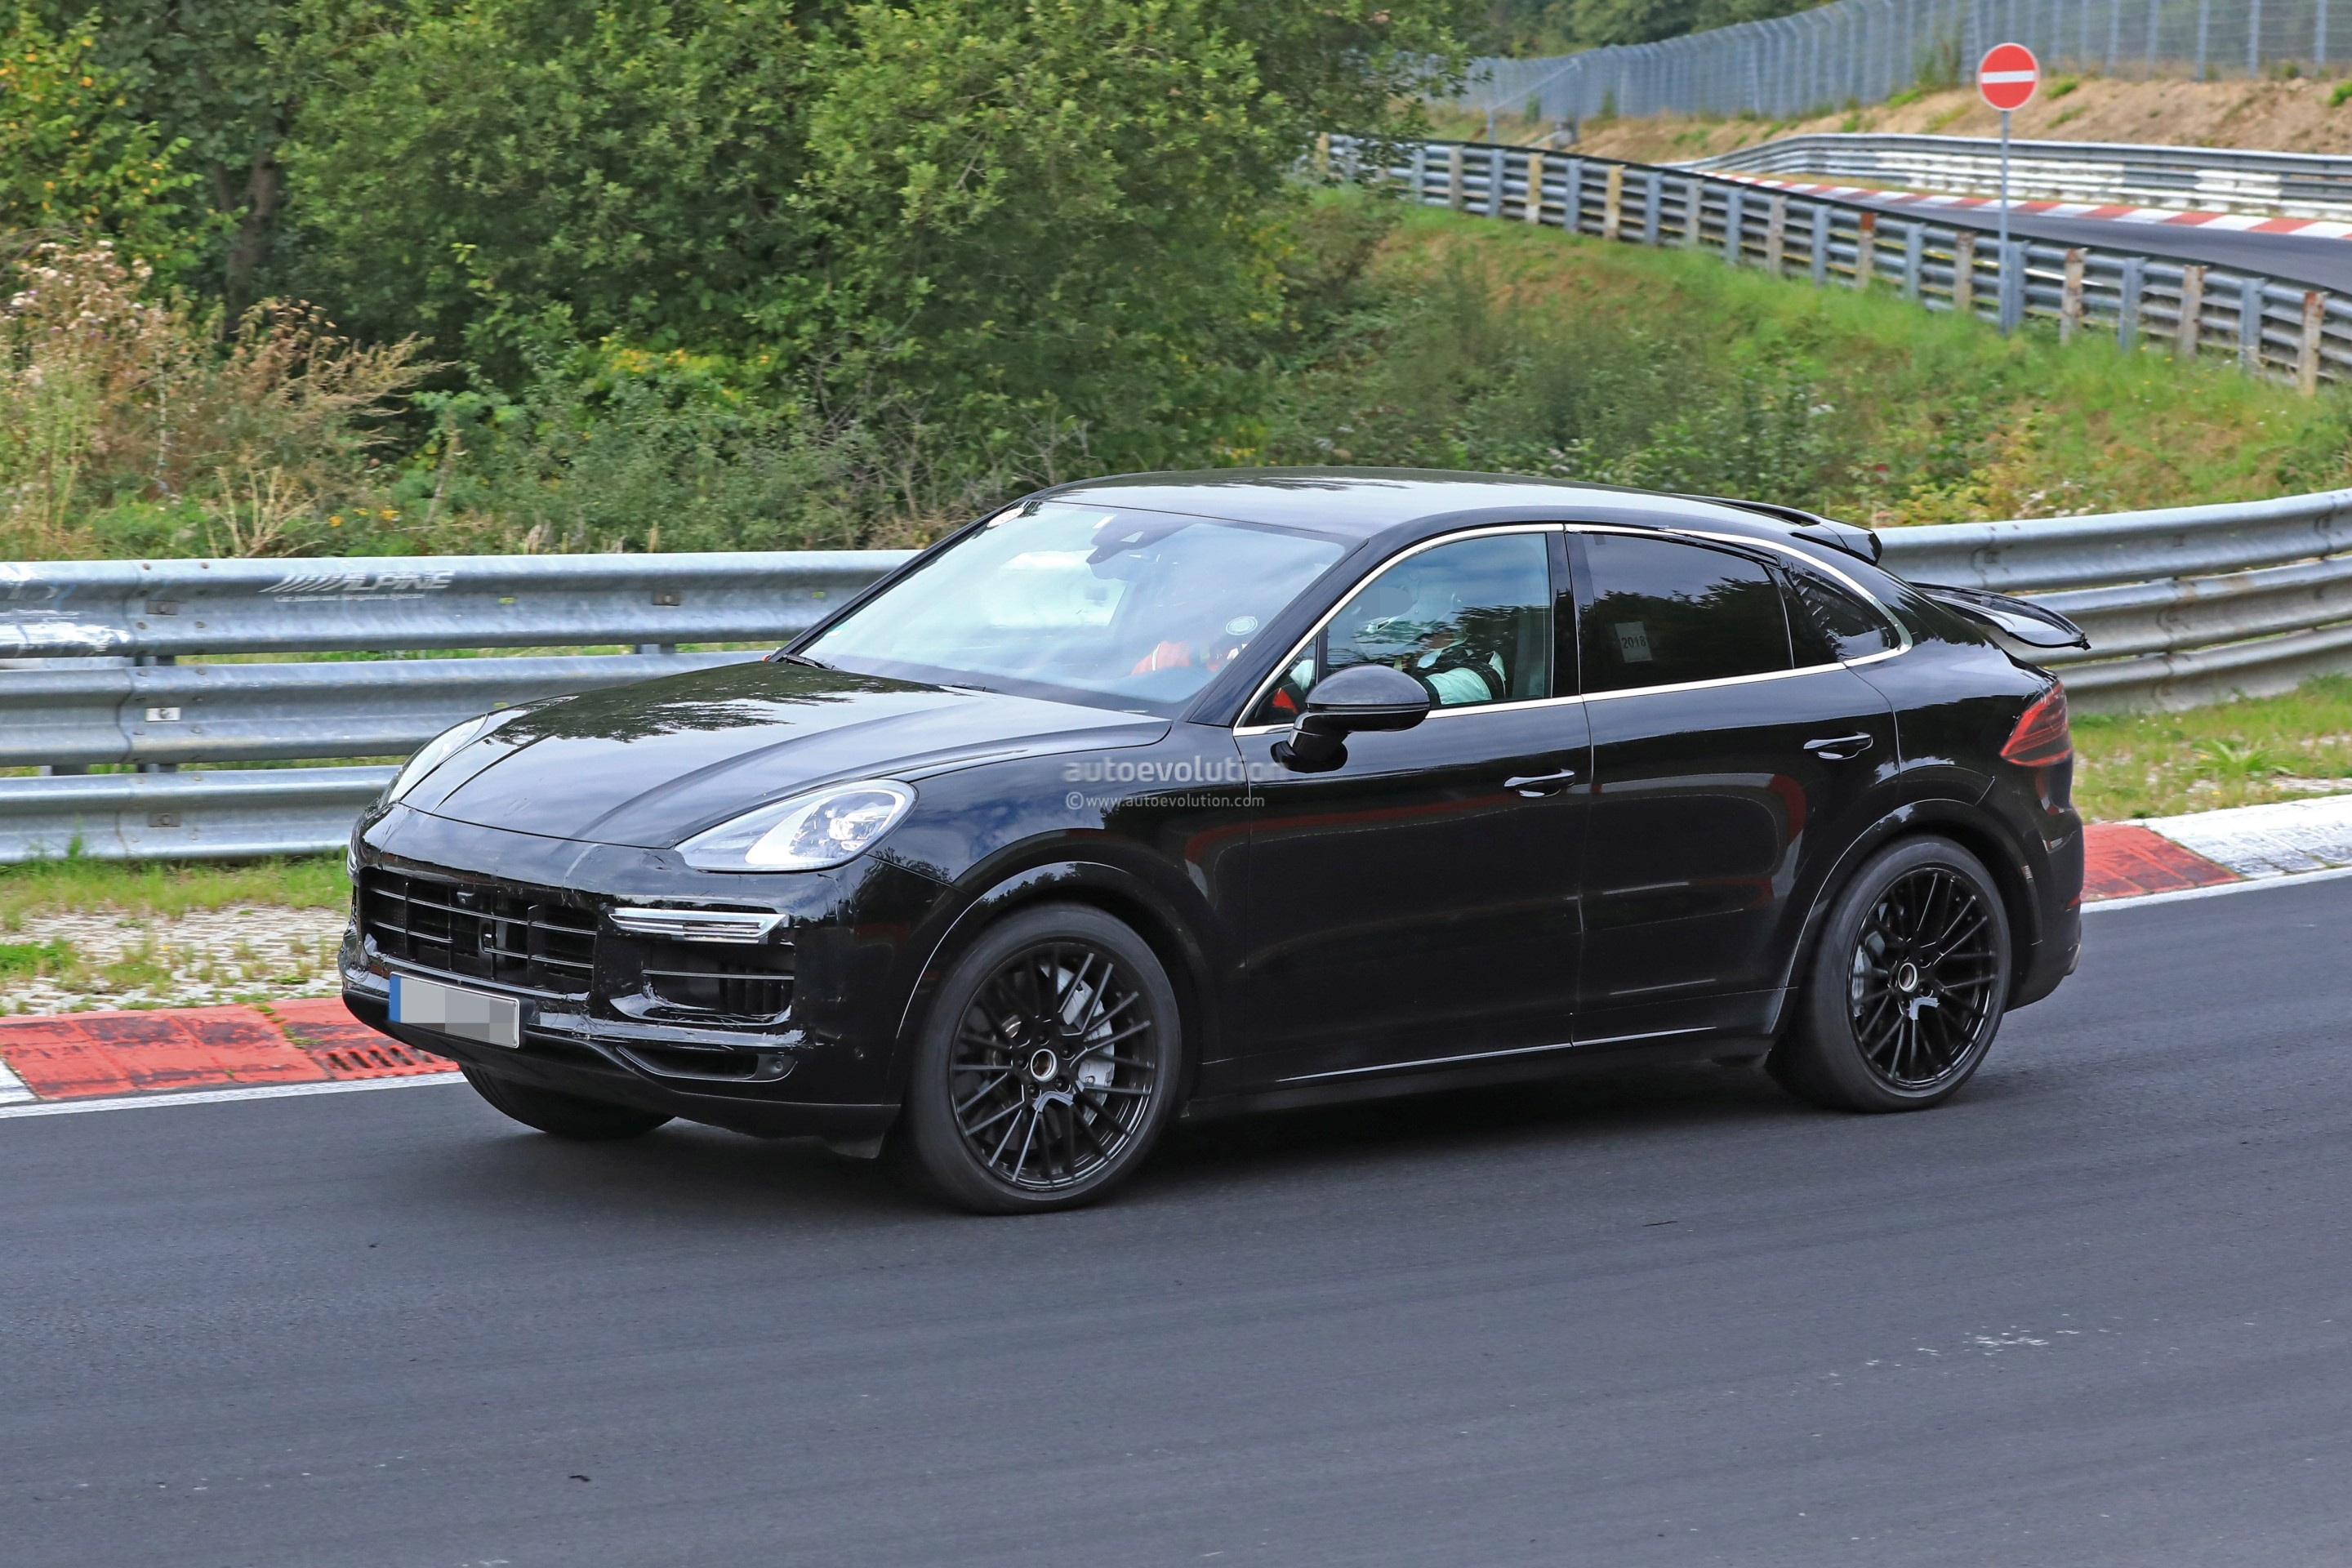 How To Focus On Wet Window >> 2020 Porsche Cayenne Coupe Hits Nurburgring, Prototype Shows Active Rear Wing - autoevolution